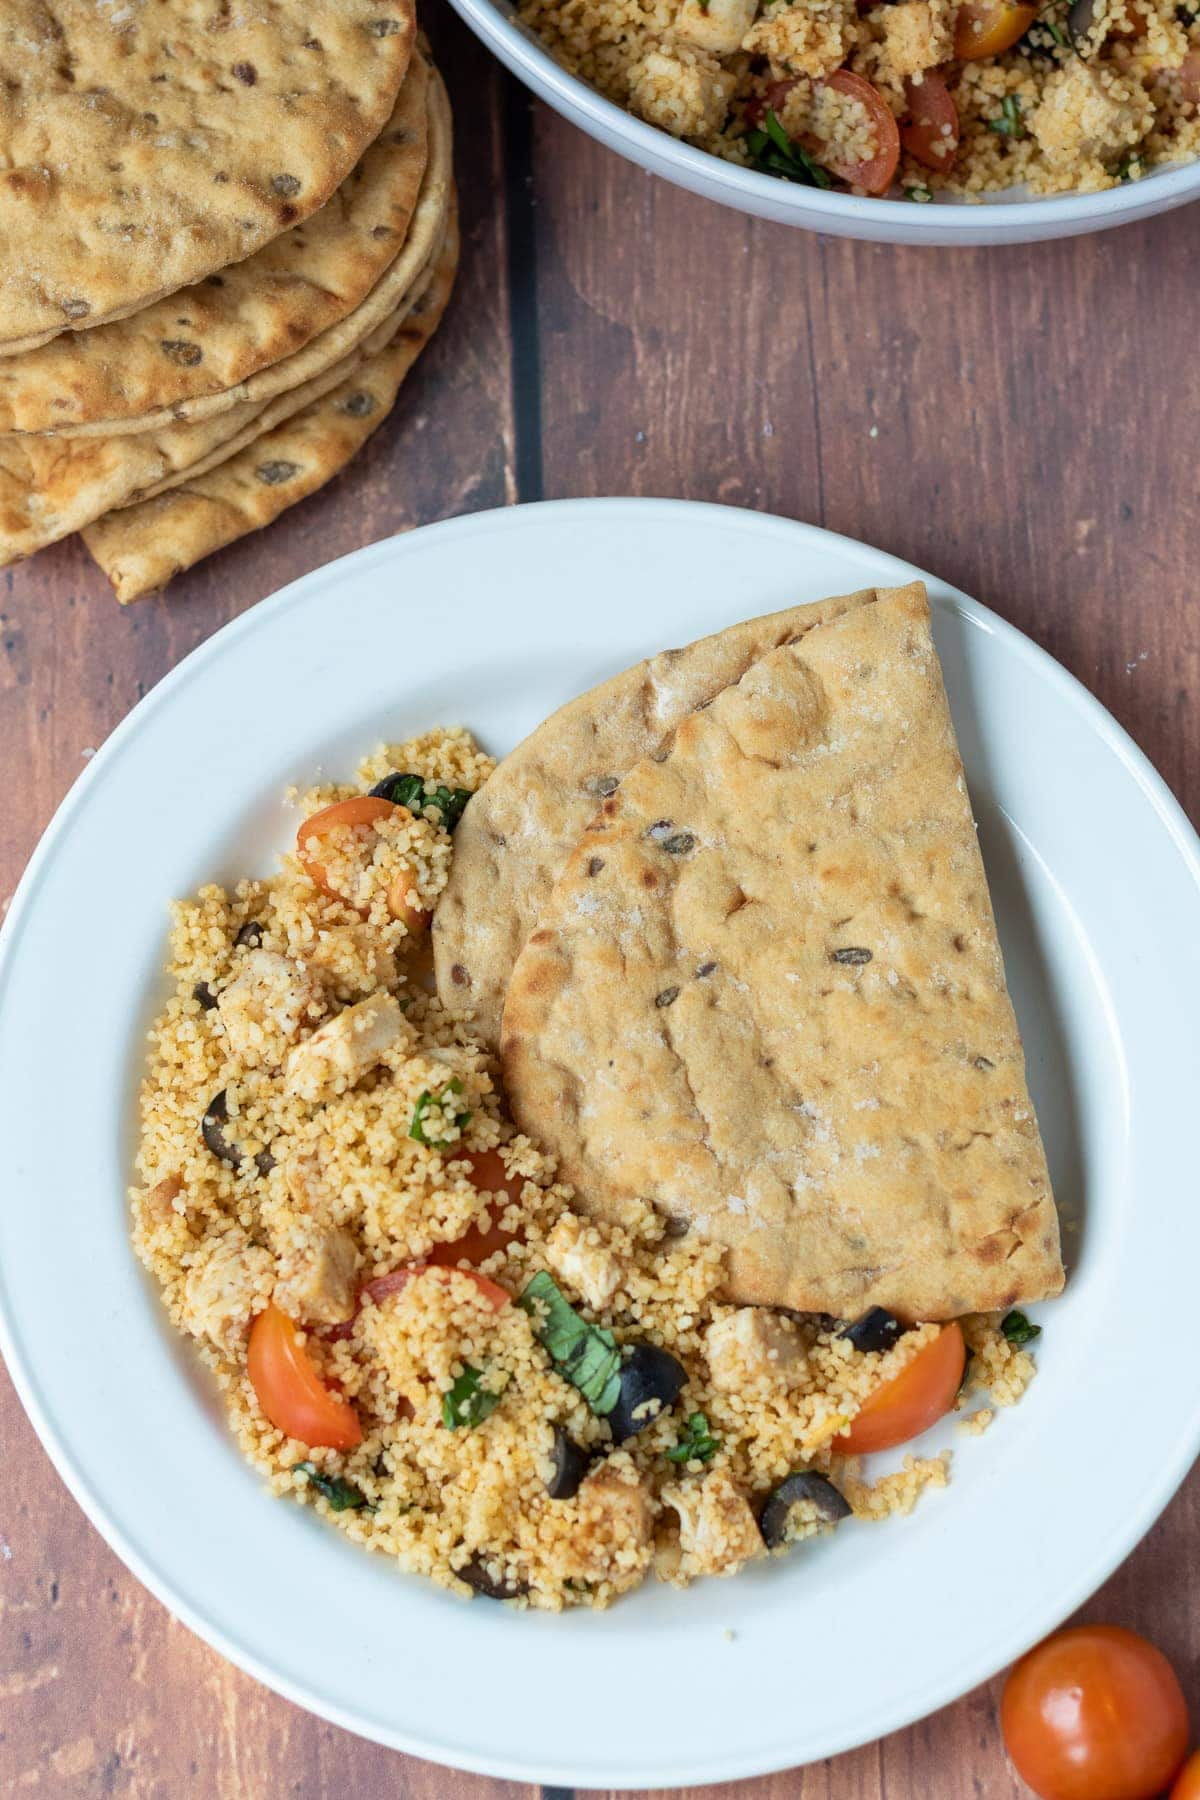 Birds eye view of a plate of chicken couscous salad with flat breads.